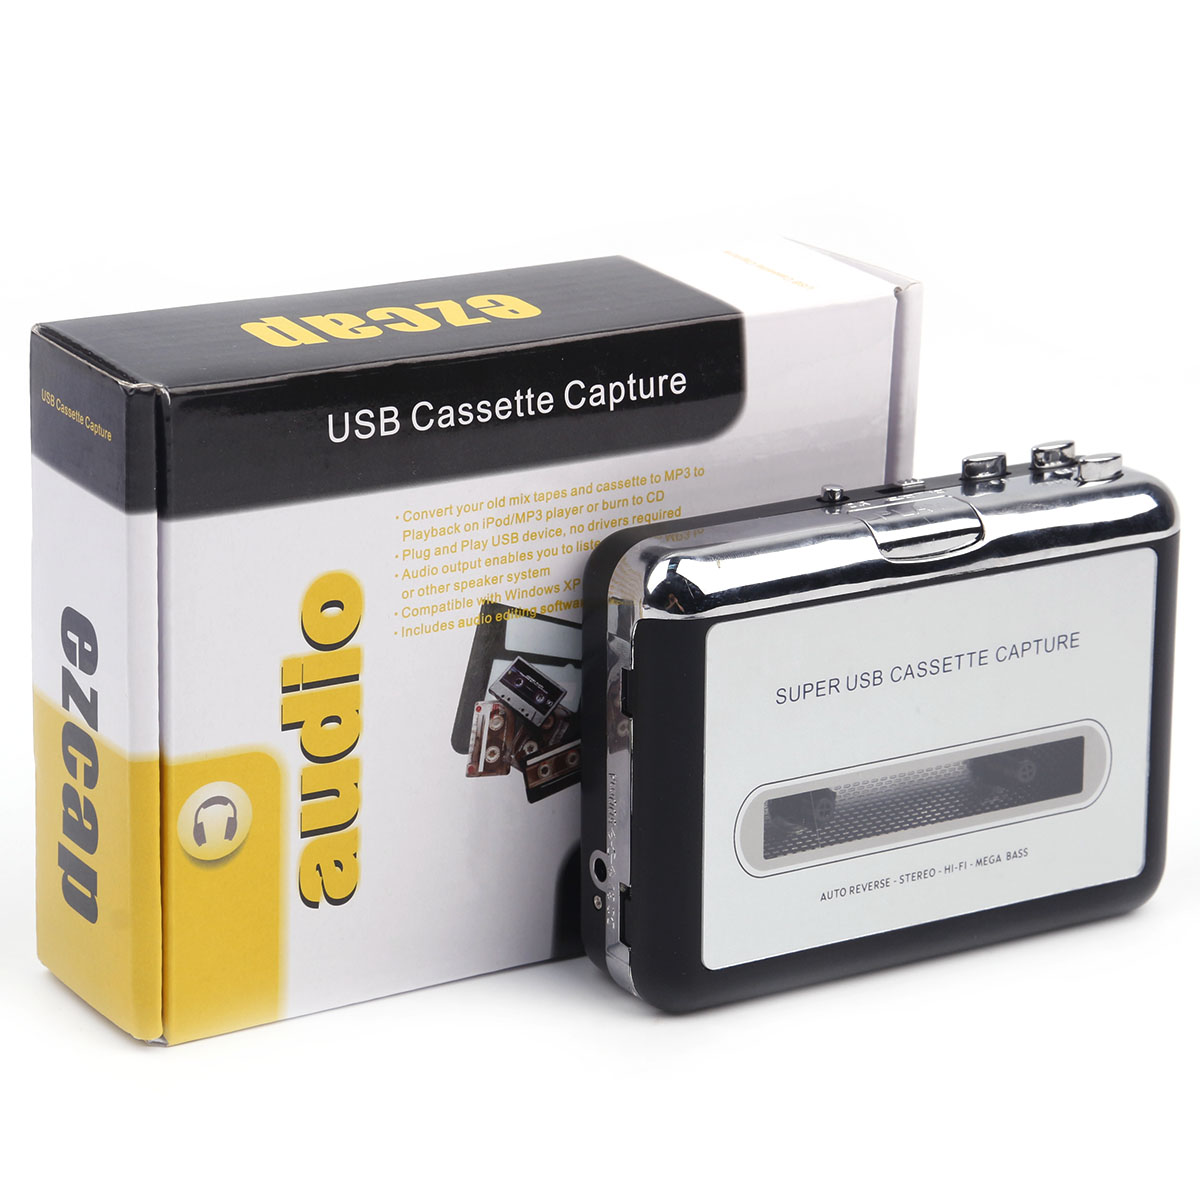 Portable Stand-Alone Cassette Tape To MP3 Converter Stereo Audio Player , Convert Cassette To USB Flash Drive With Earphones